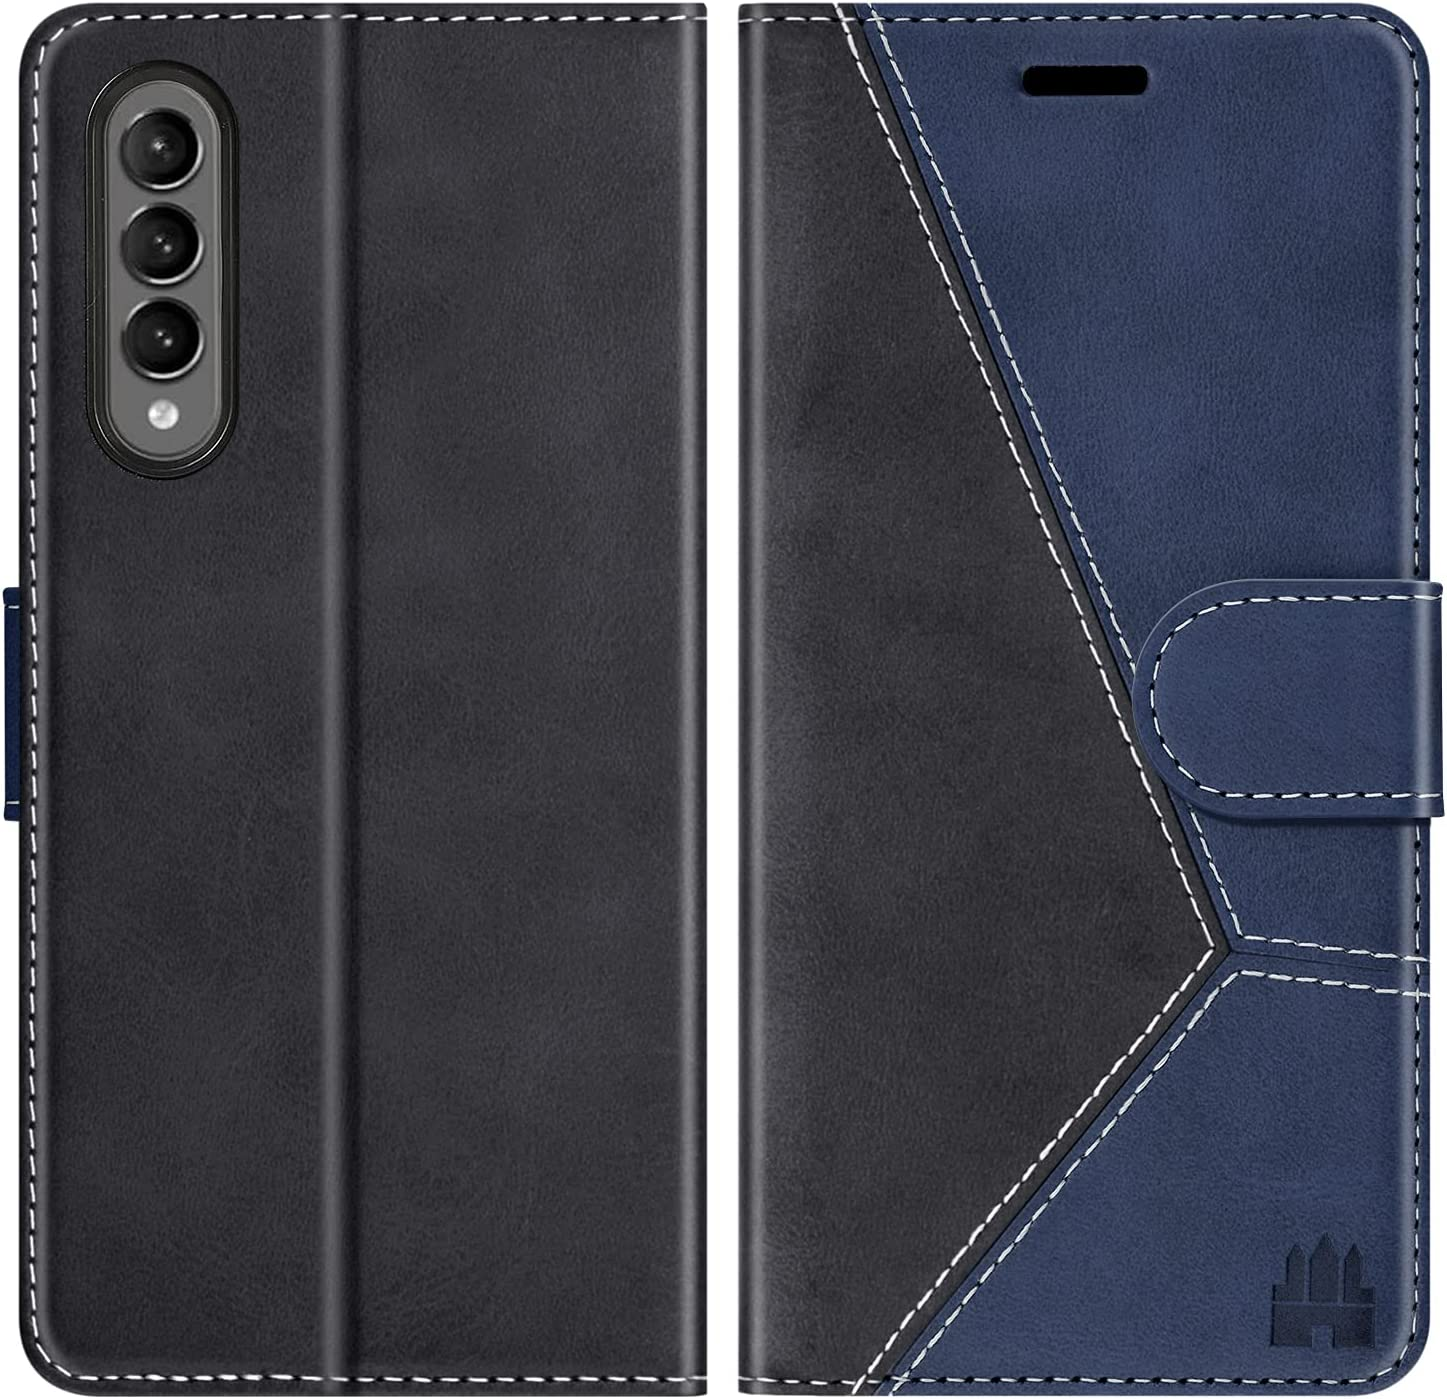 Caislean Galaxy Z Fold 3 Wallet Case, FRID Blocking Card Holder, Luxury PU Leather Attached Hard PC Inner Case Magnetic Closure Protective Flip Phone Cover for Samsung Galaxy Z Fold 3 5G Navy Blue